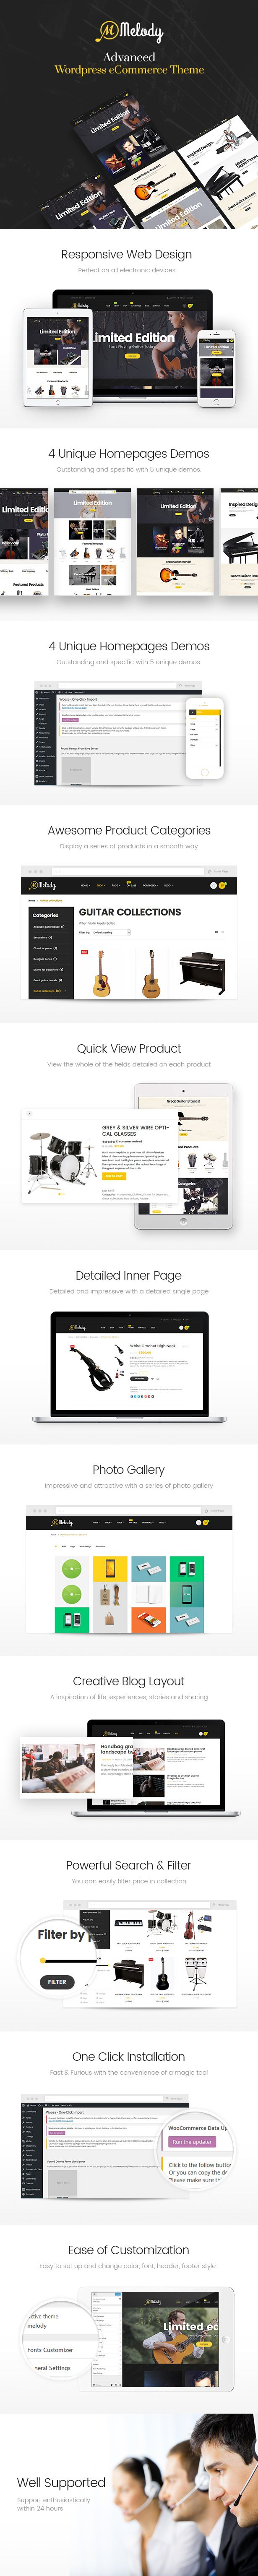 Download Melody  WordPress Theme for Musical Instruments & Music BandClub (WooCommerce)  Theme Overview  Melody  WordPress Theme for Musical Instruments & Music Band/Club is a clean and elegant design that is really ideal for you to set up any music websites for musical instruments artists music bands musicians or anyone working in the music industry. The template has a modern design and is very flexible allowing you to customize it according to your music style and to your needs..  This…